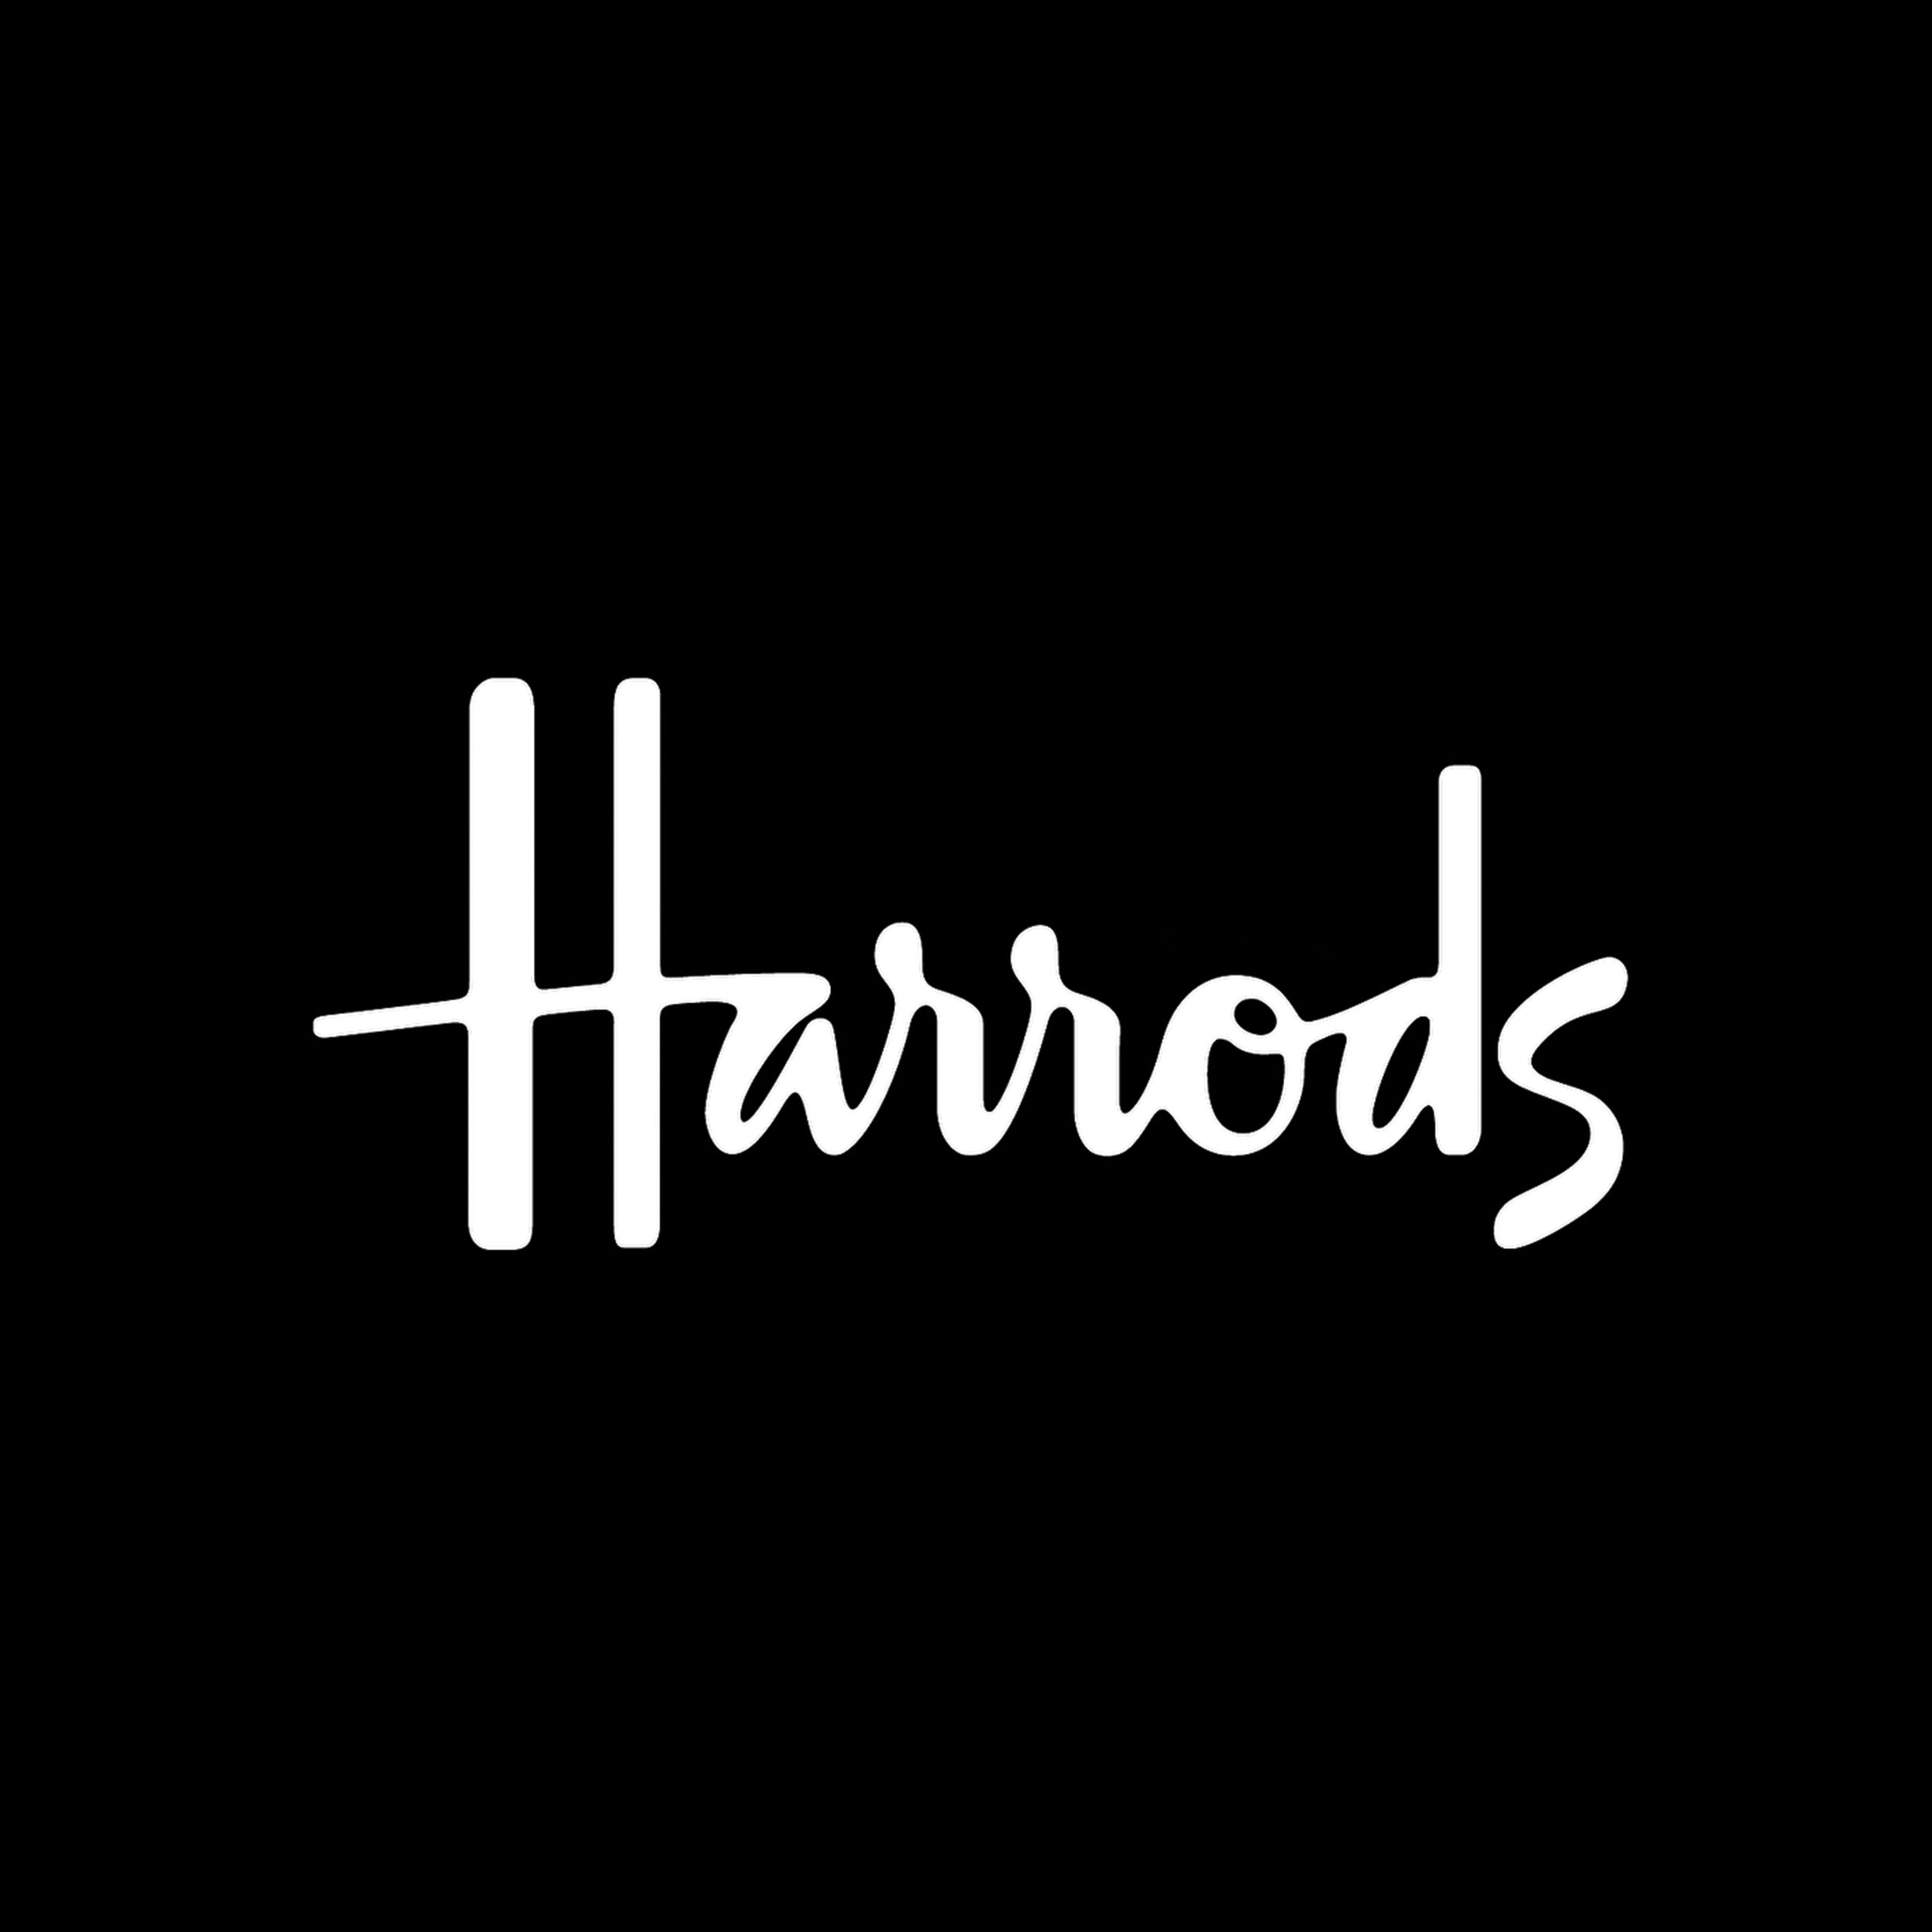 Harrods Website.jpg